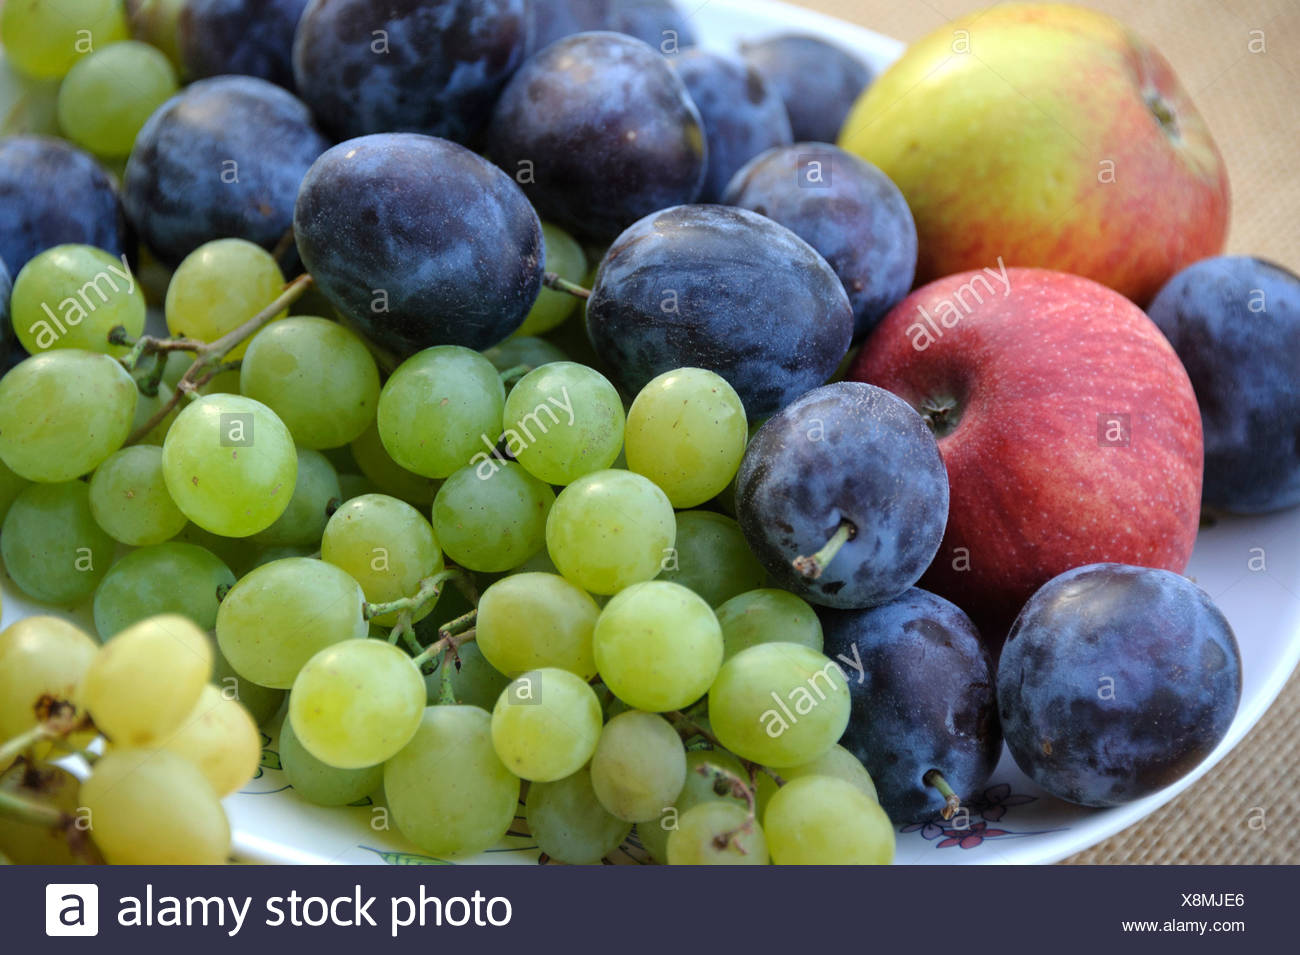 plums, apples and grapes on a plate - Stock Image